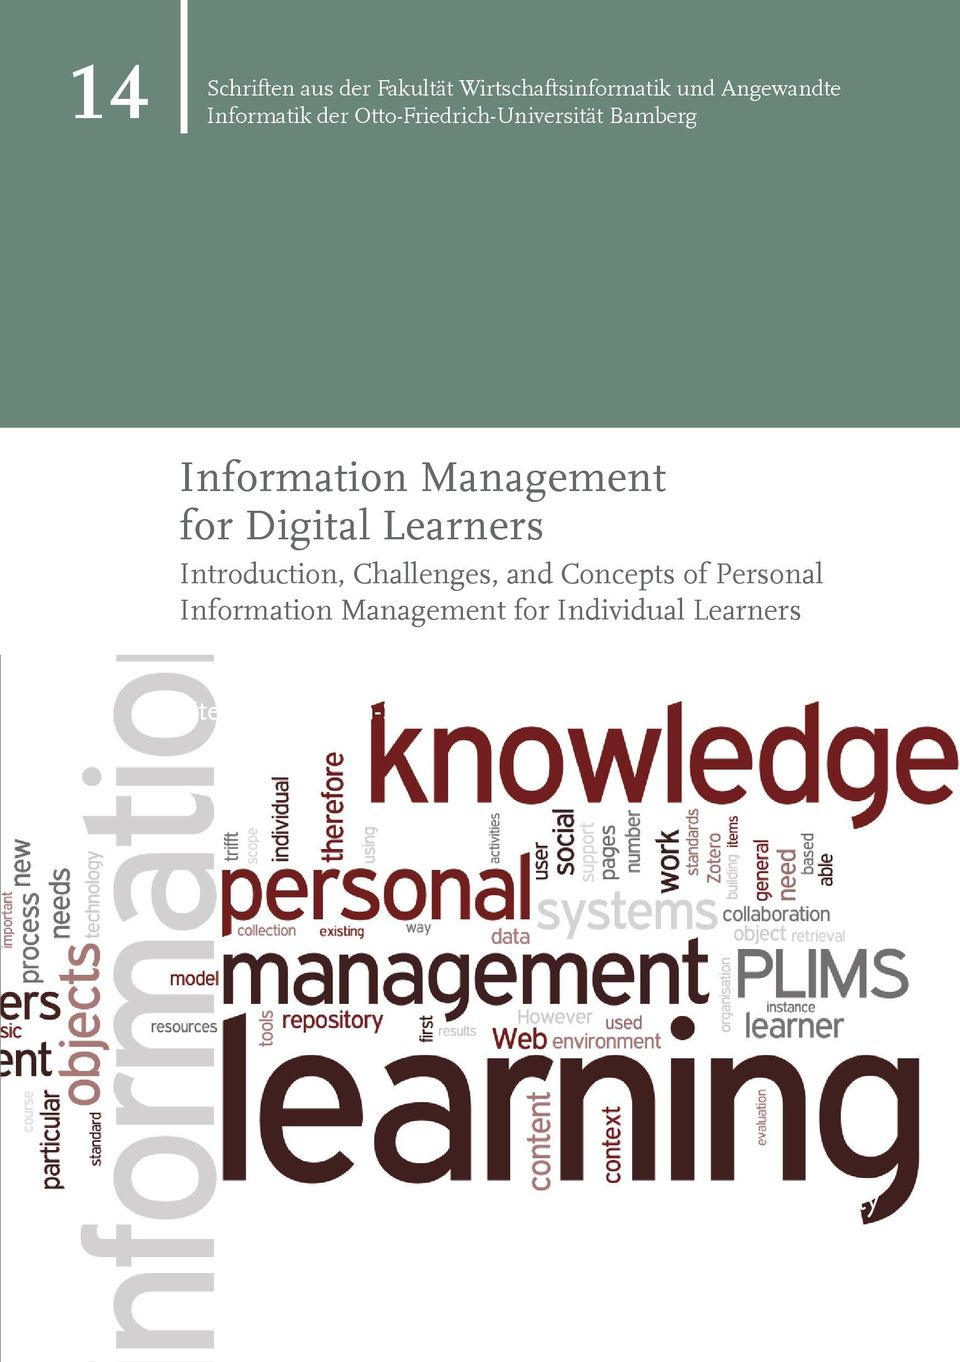 Management for Digital Learners Introduction, Challenges, and Concepts